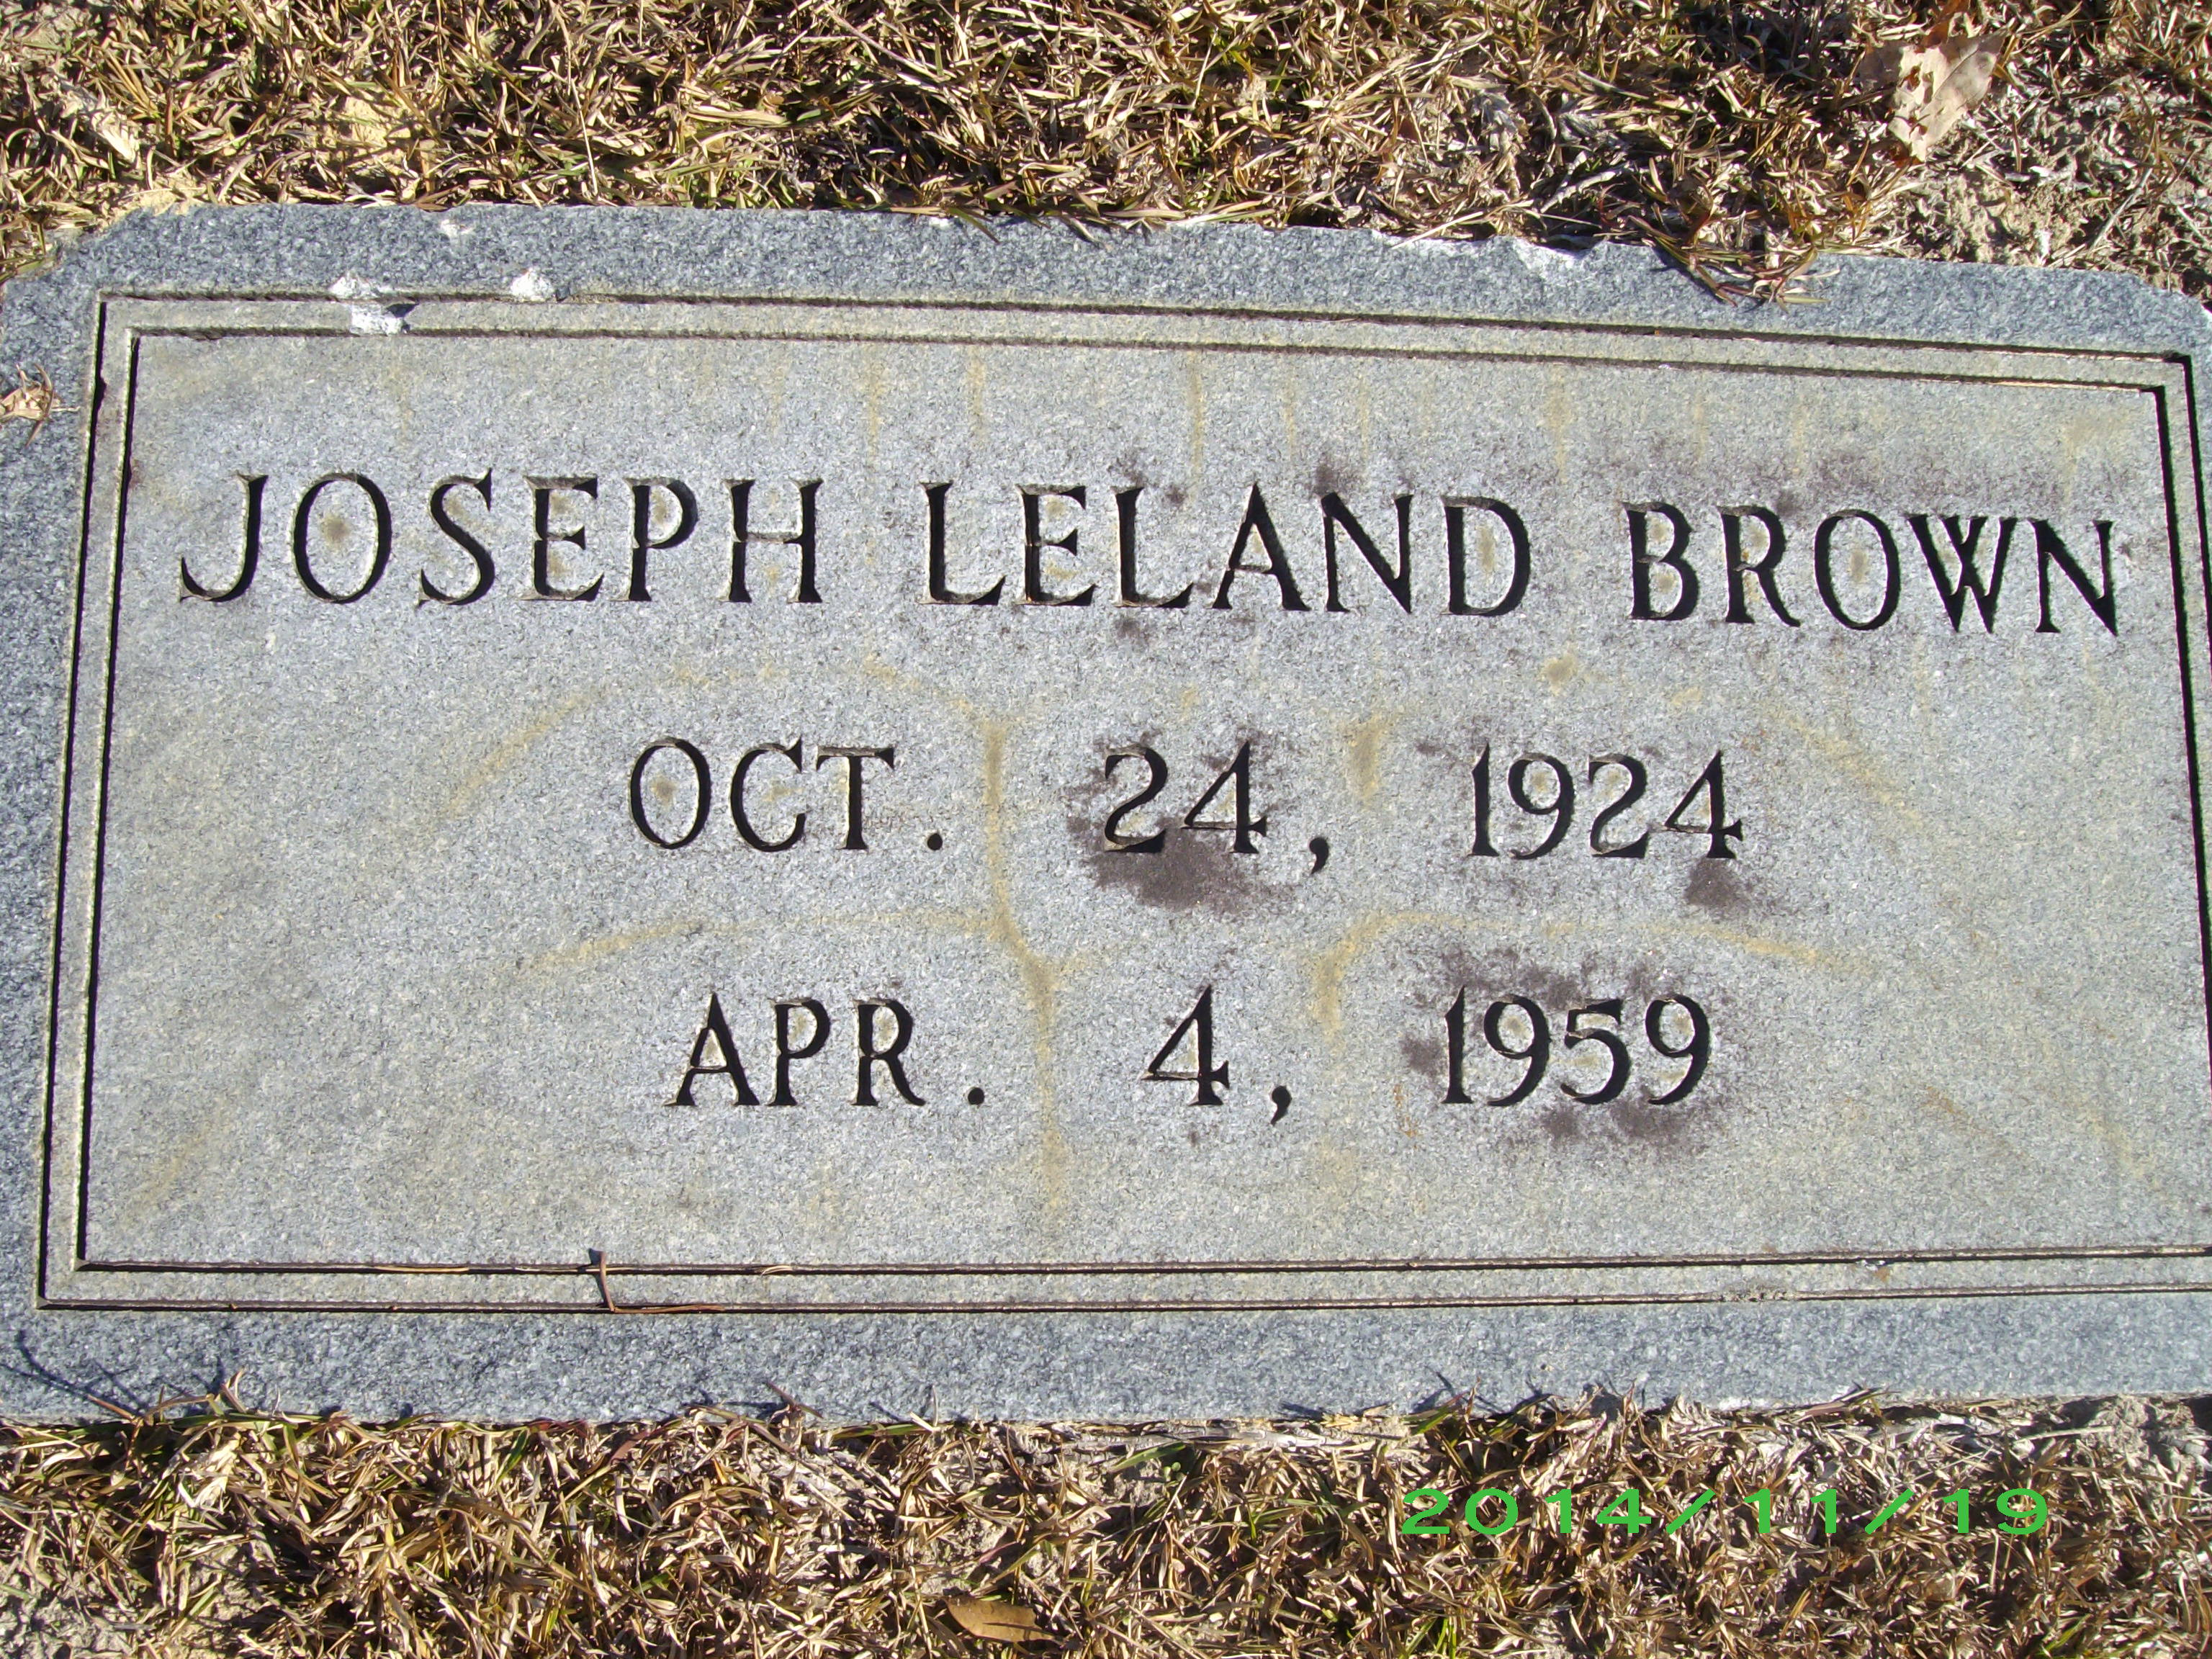 Leland Brown